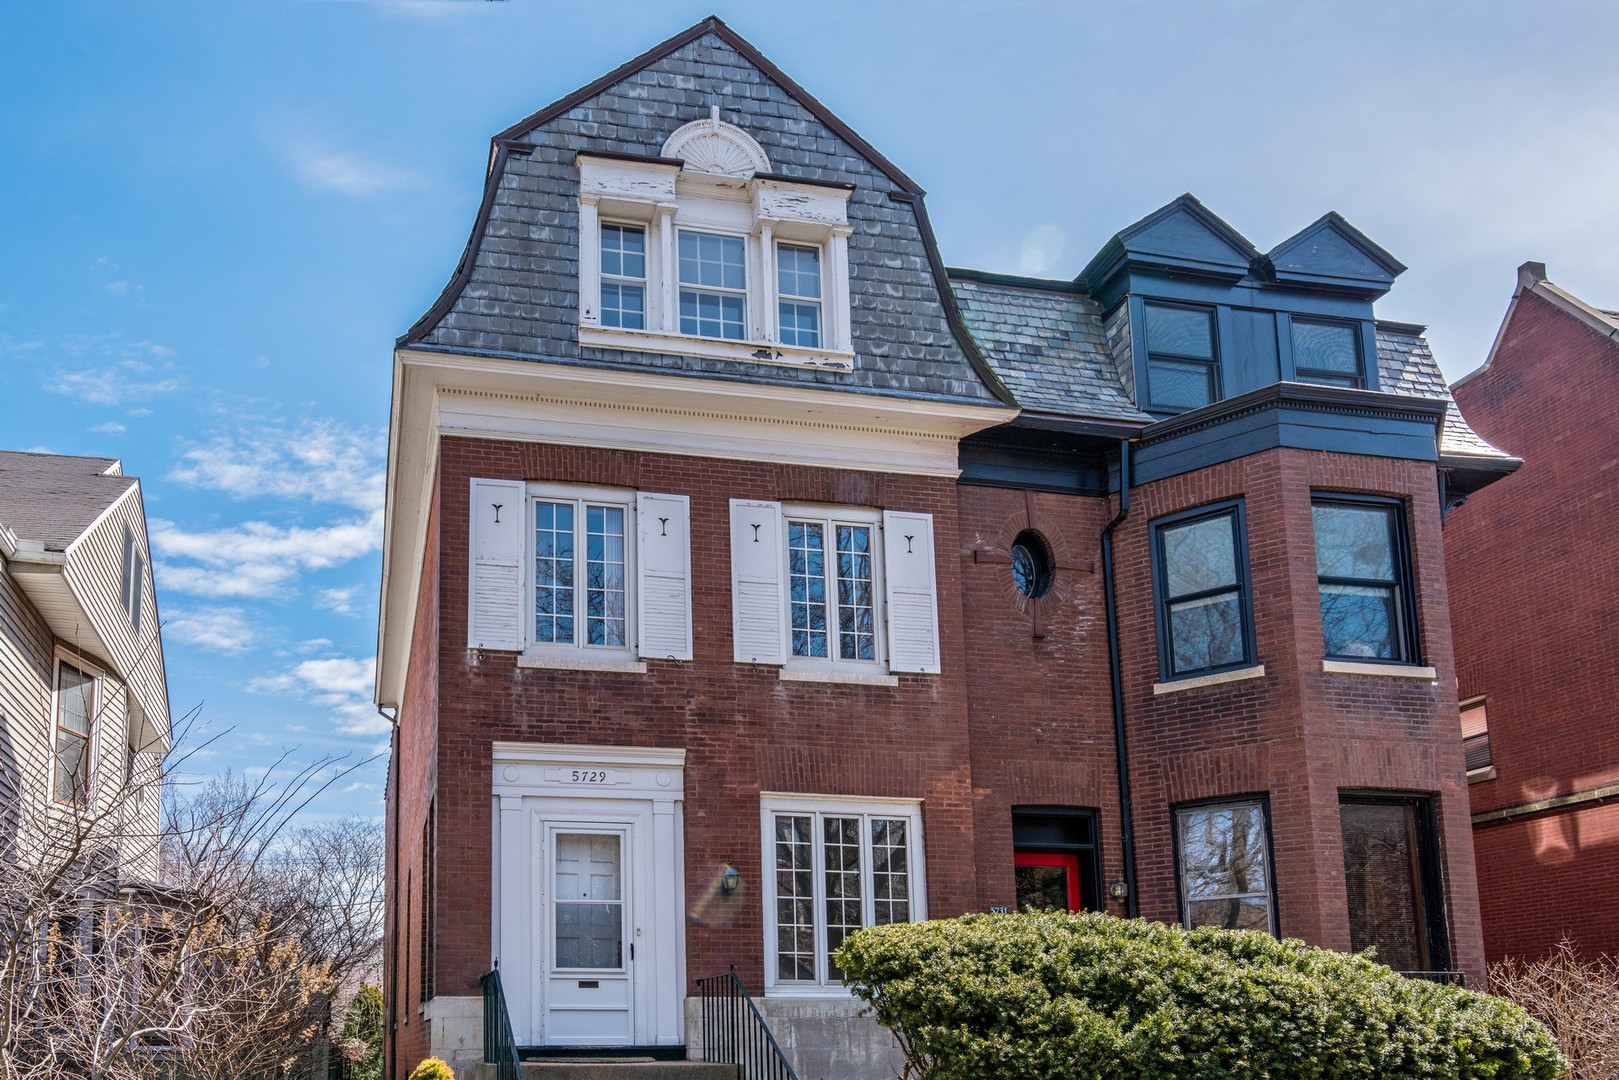 Property for sale at 5729 South Blackstone Avenue, Chicago-Hyde Park,  IL 60637